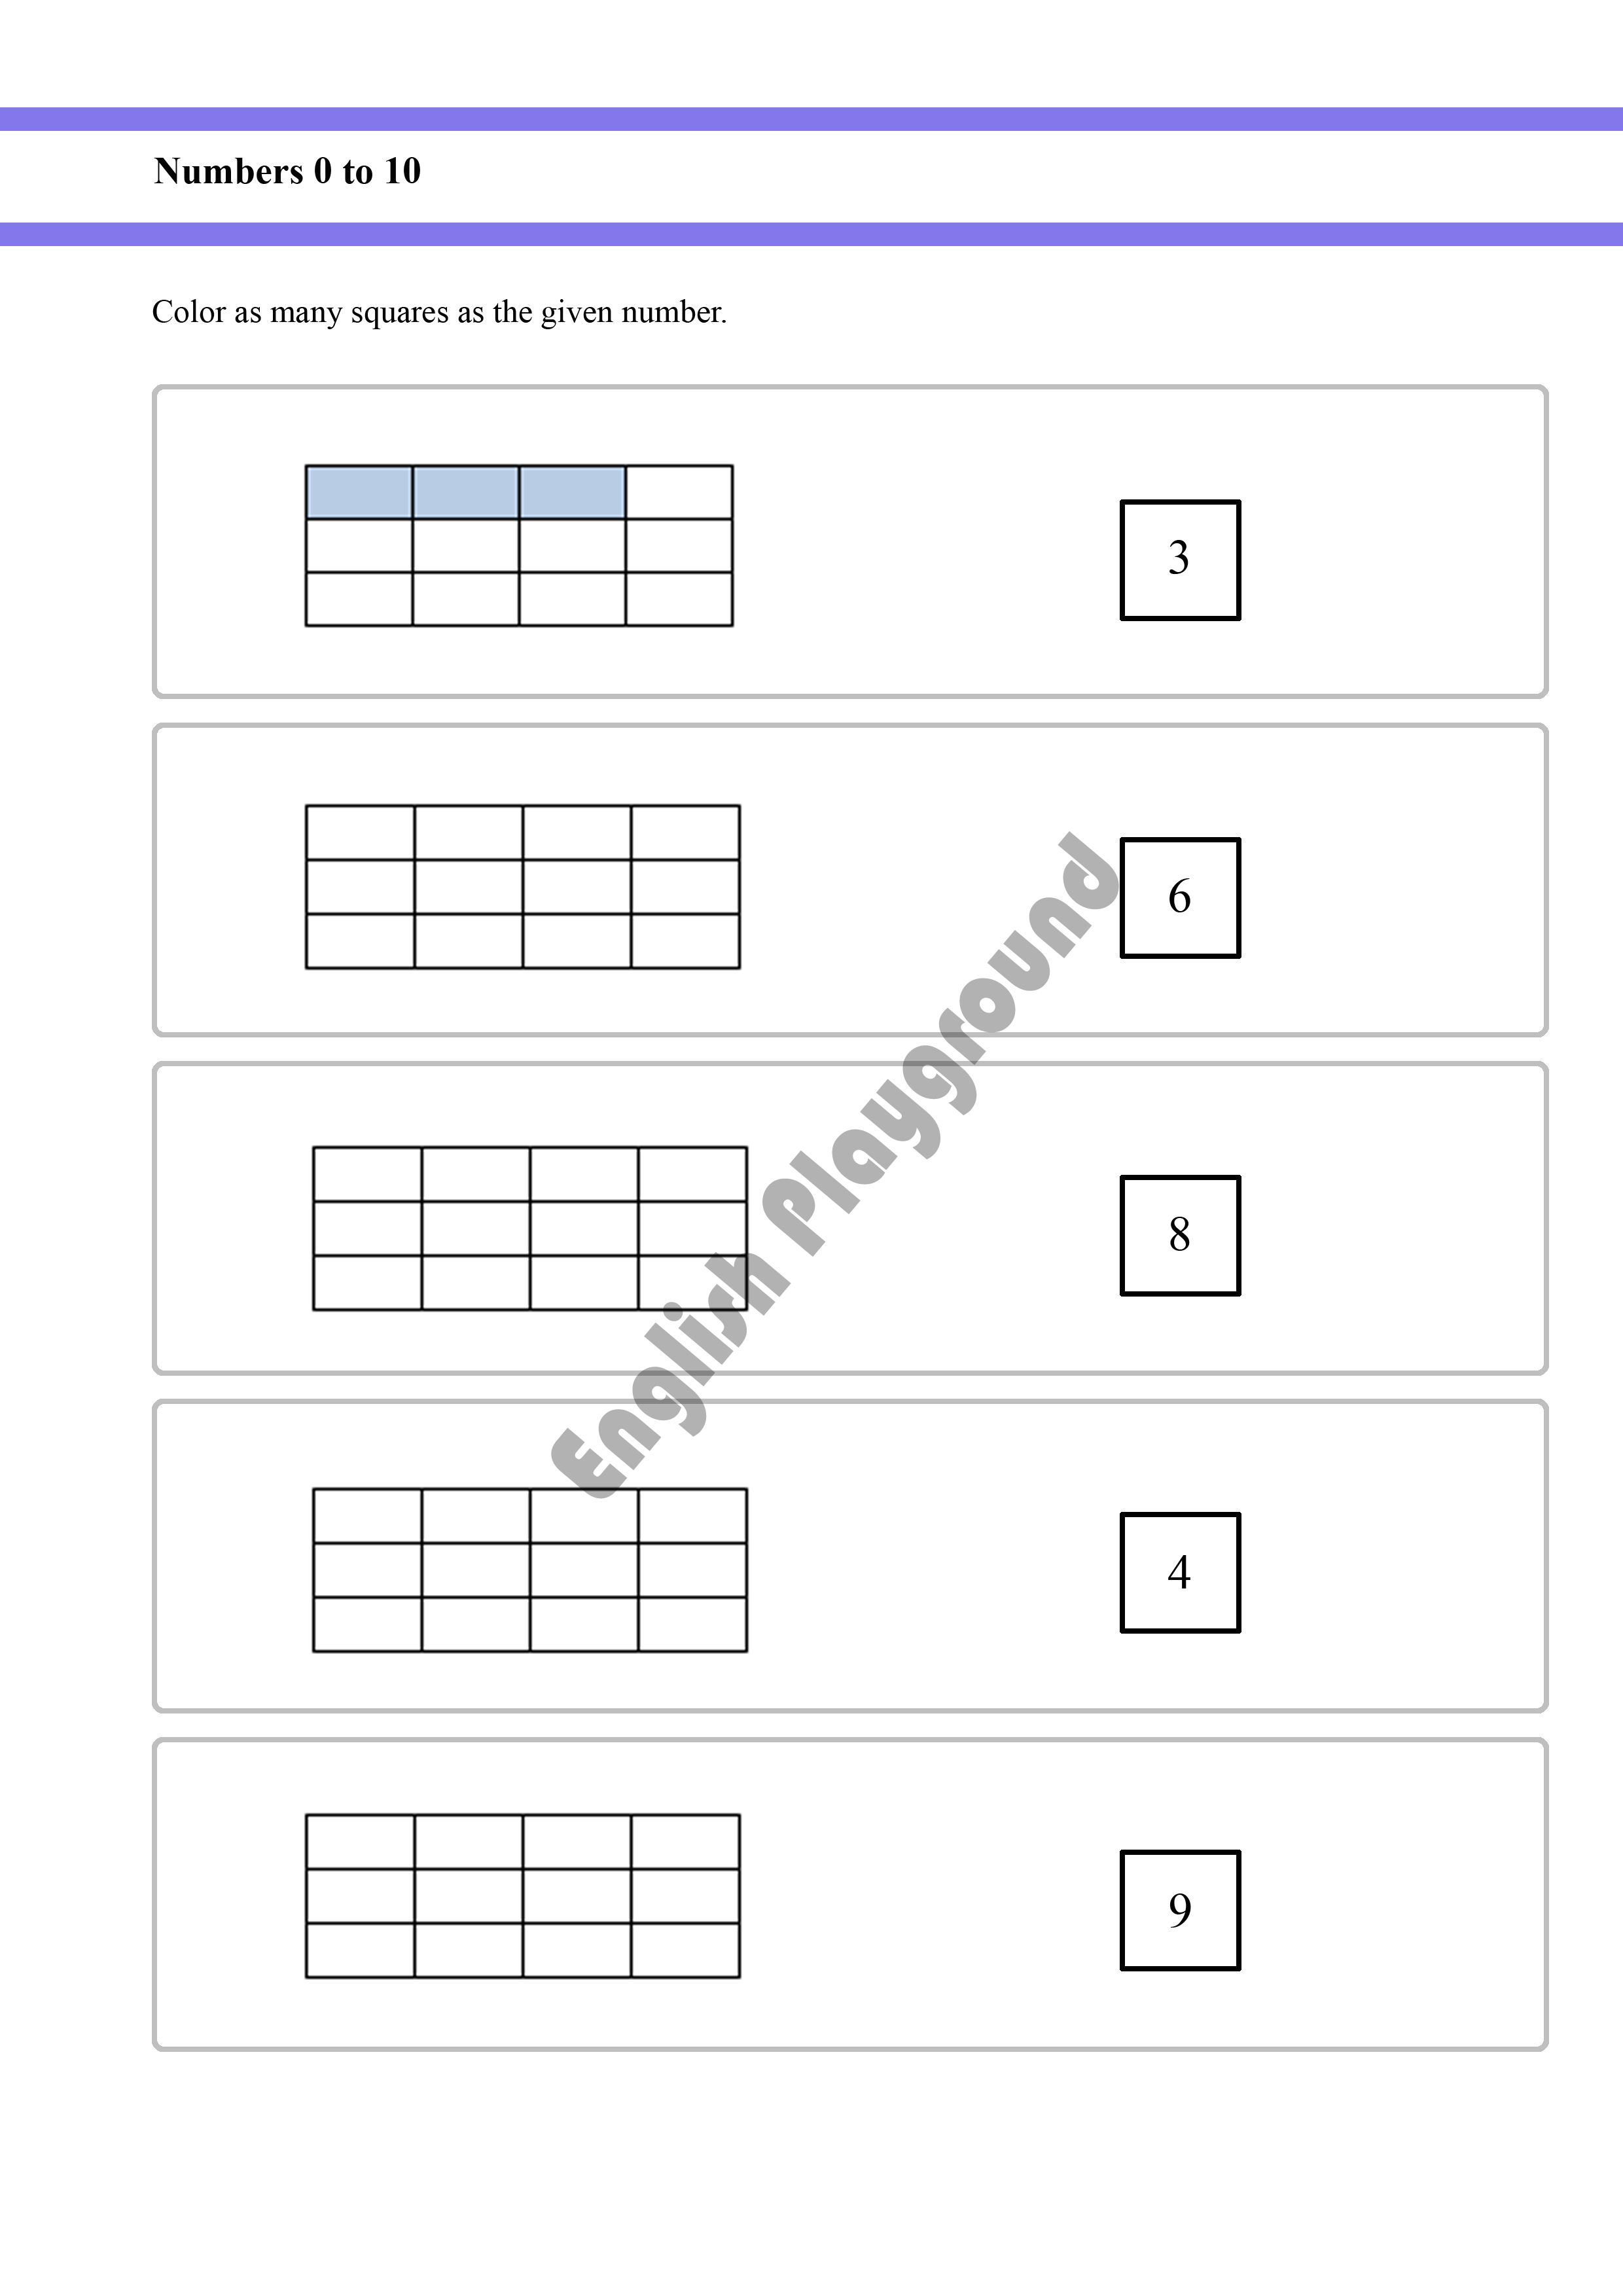 Counting Up To 10 Worksheet For Reception And Year 1